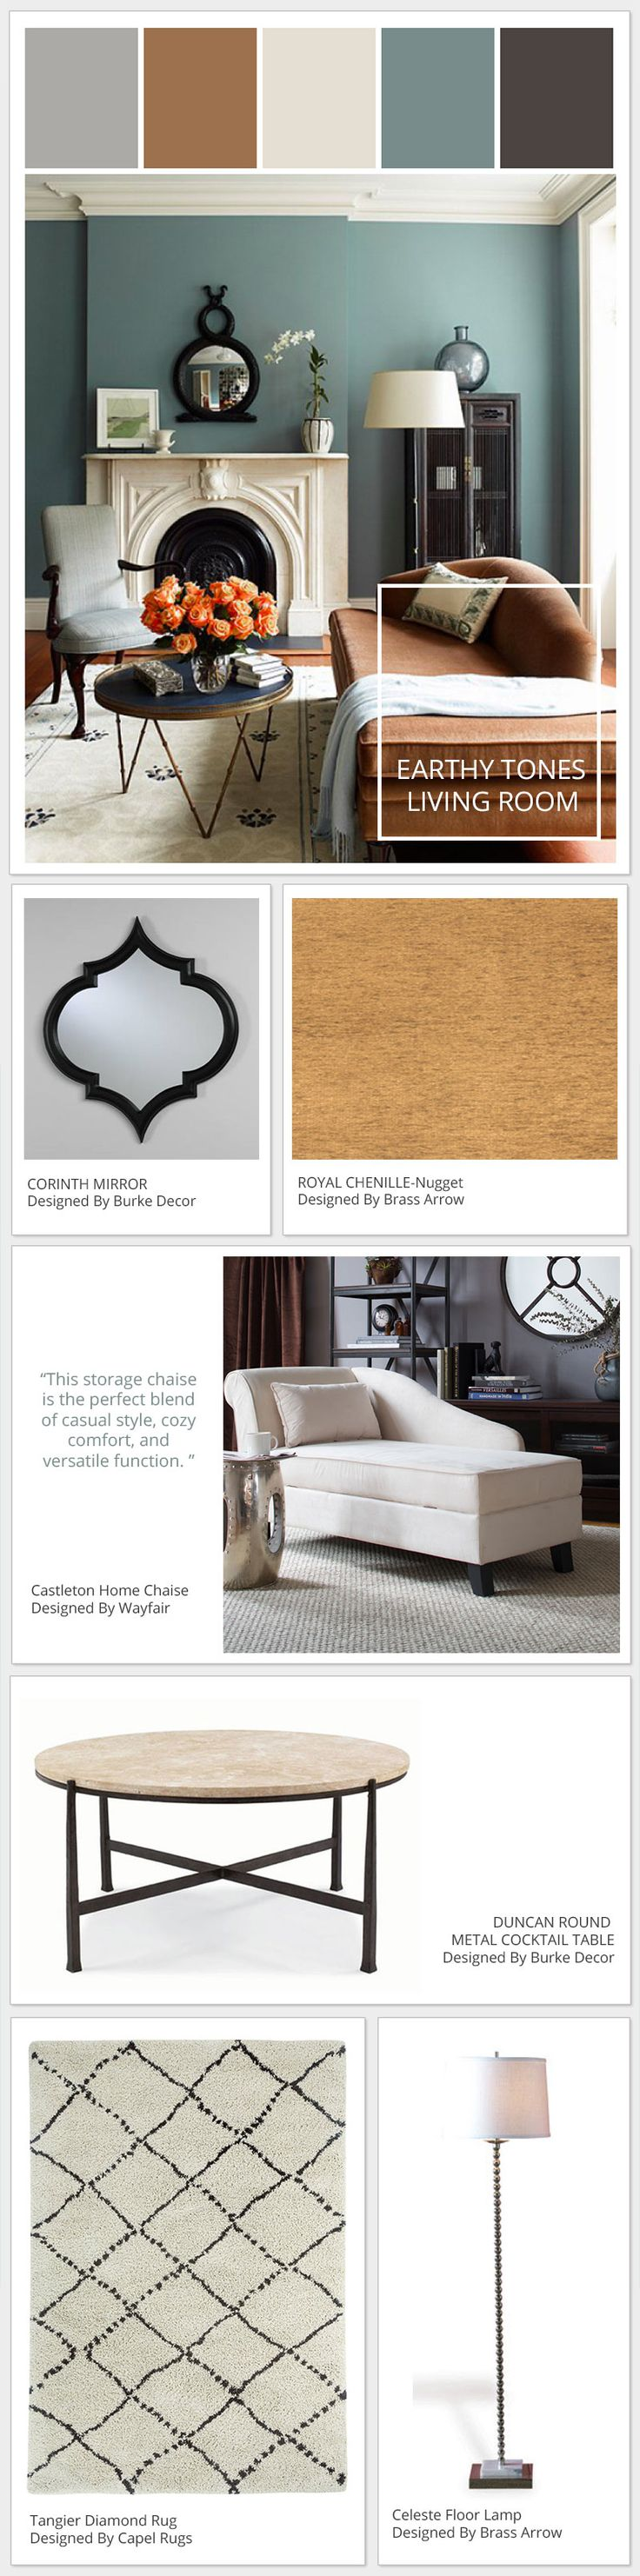 best 25 earth tone decor ideas on pinterest eclectic blinds and